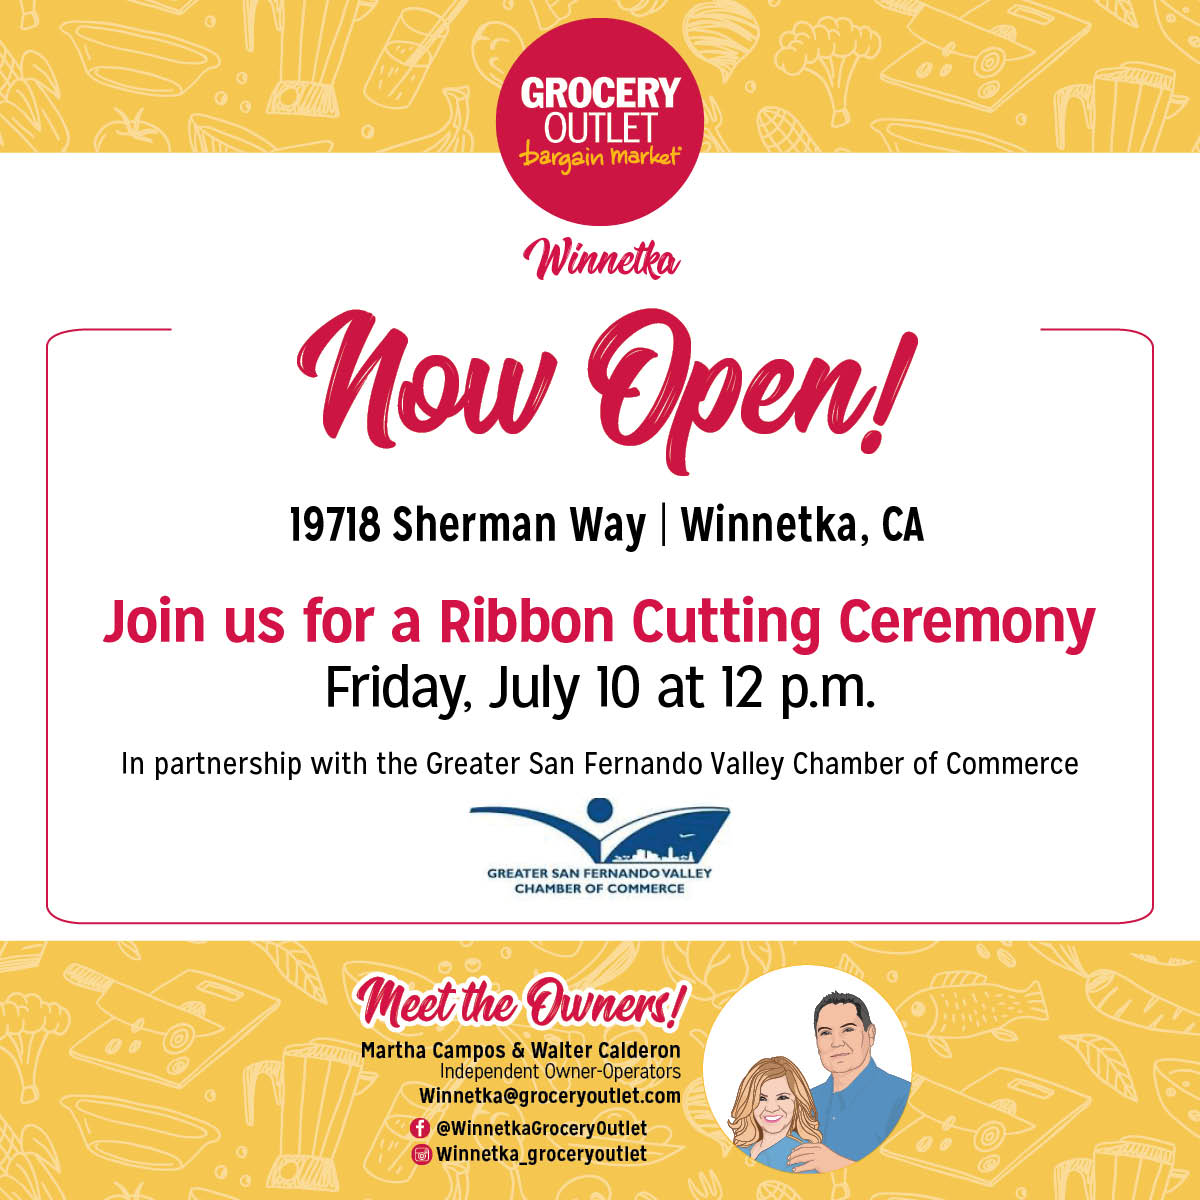 Grocery Outlet Ribbon Cutting